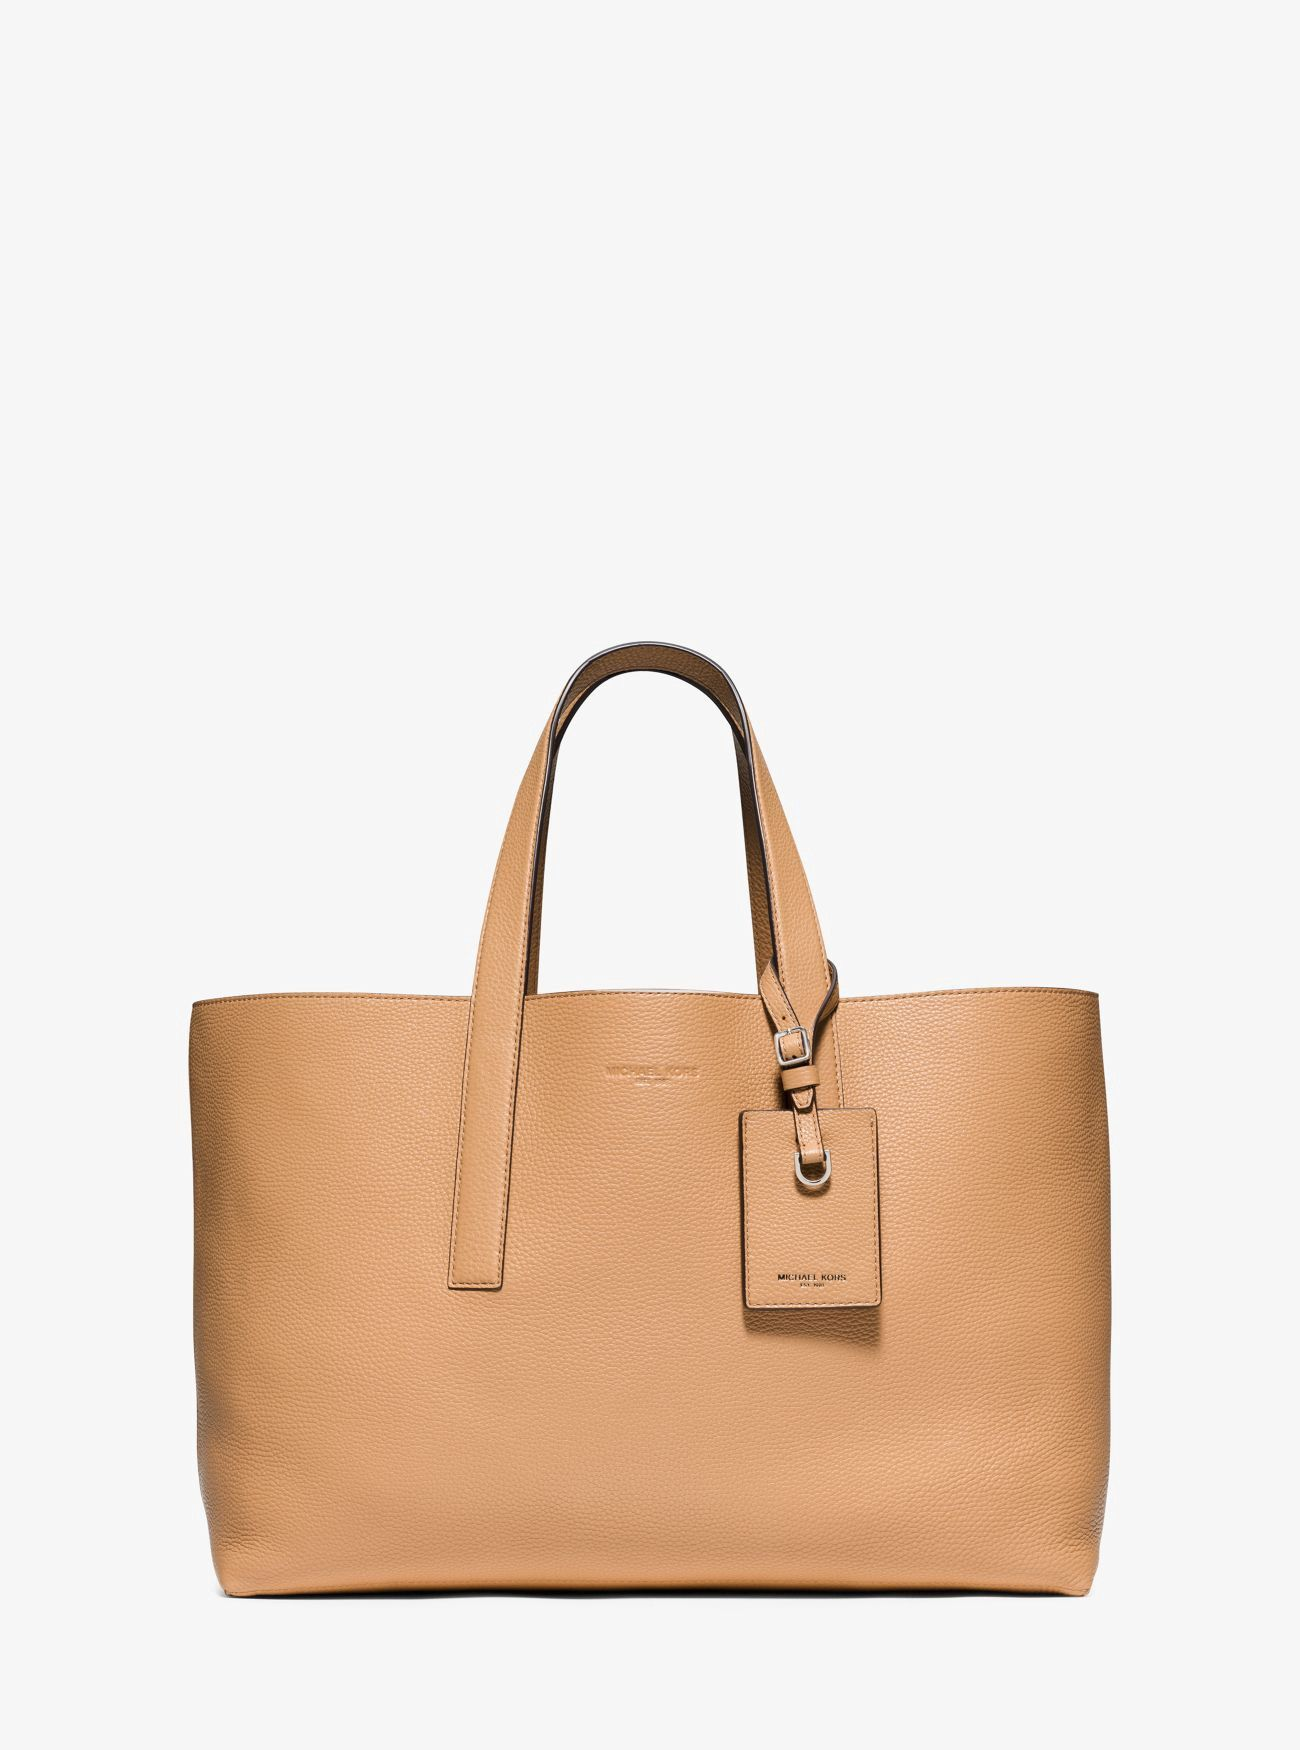 bf281abf1192 MICHAEL KORS Mason Reversible Leather Tote. #michaelkors #bags #shoulder  bags #hand bags #suede #tote #